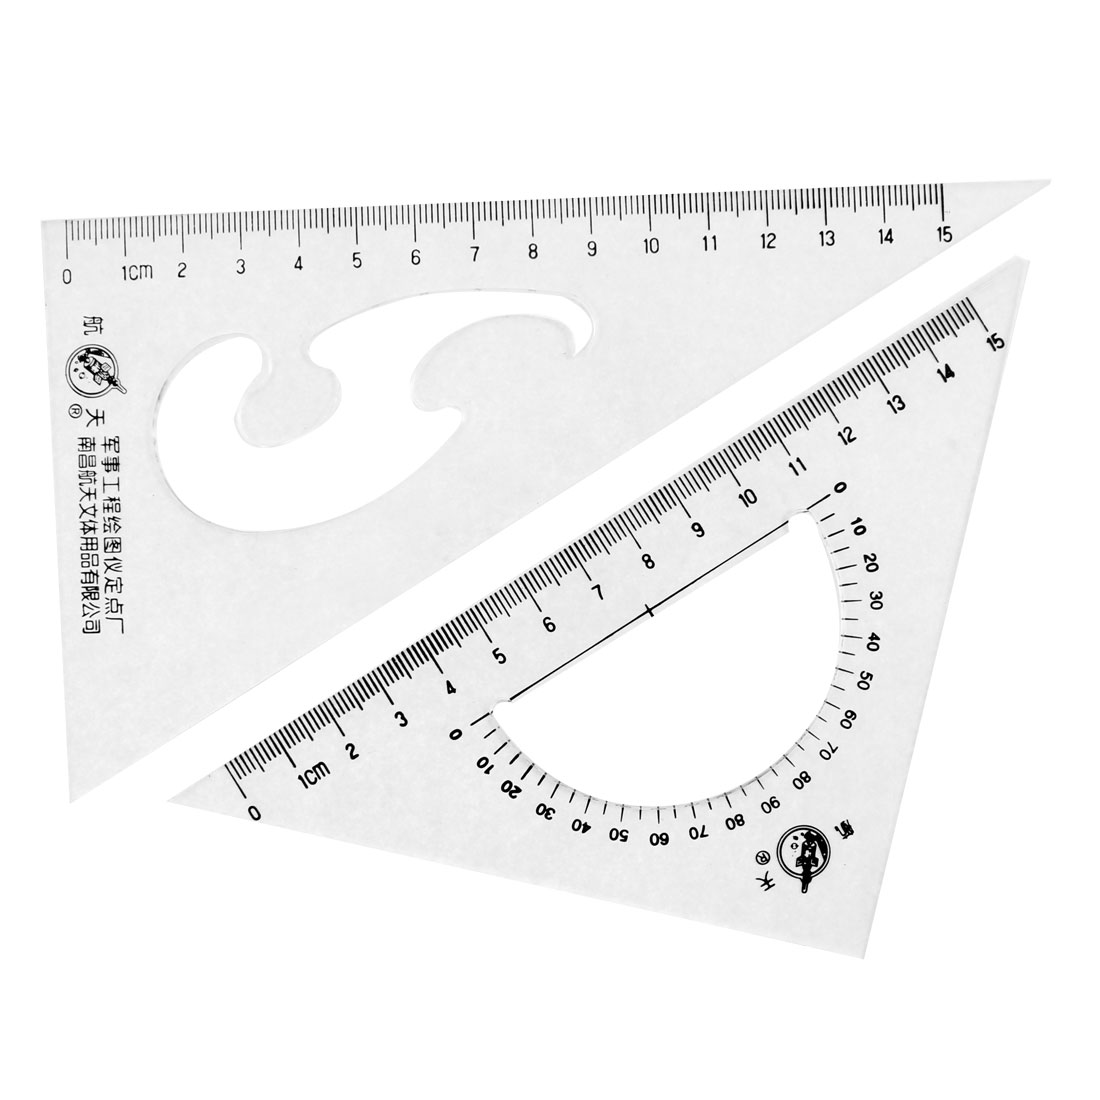 Office School Drafting Drawing Right Angle Triangle Ruler Protractor 2 Pcs by